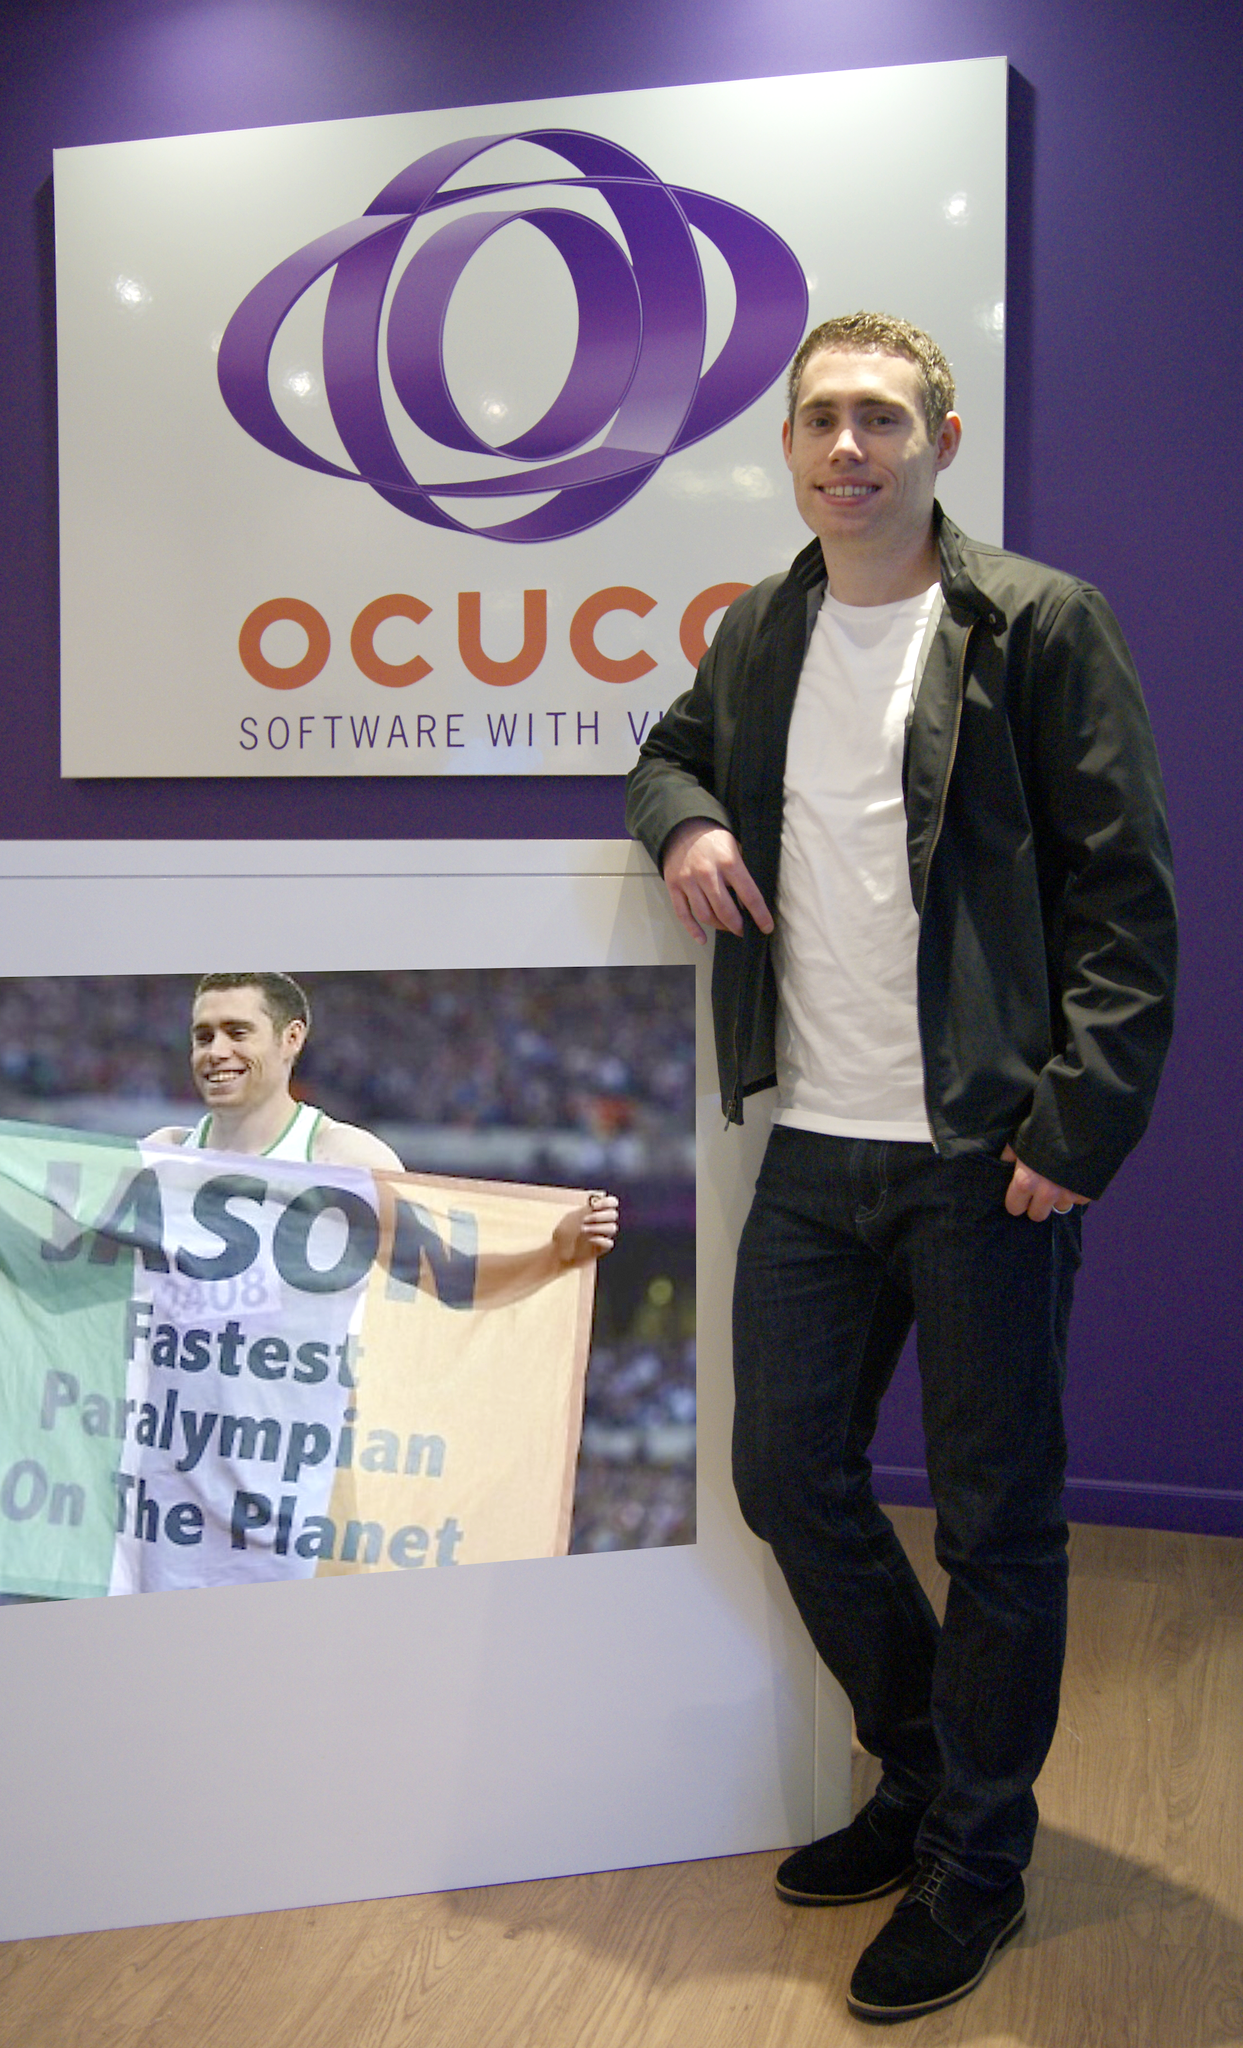 Ocuco sponsors fastest paralympian on the planet